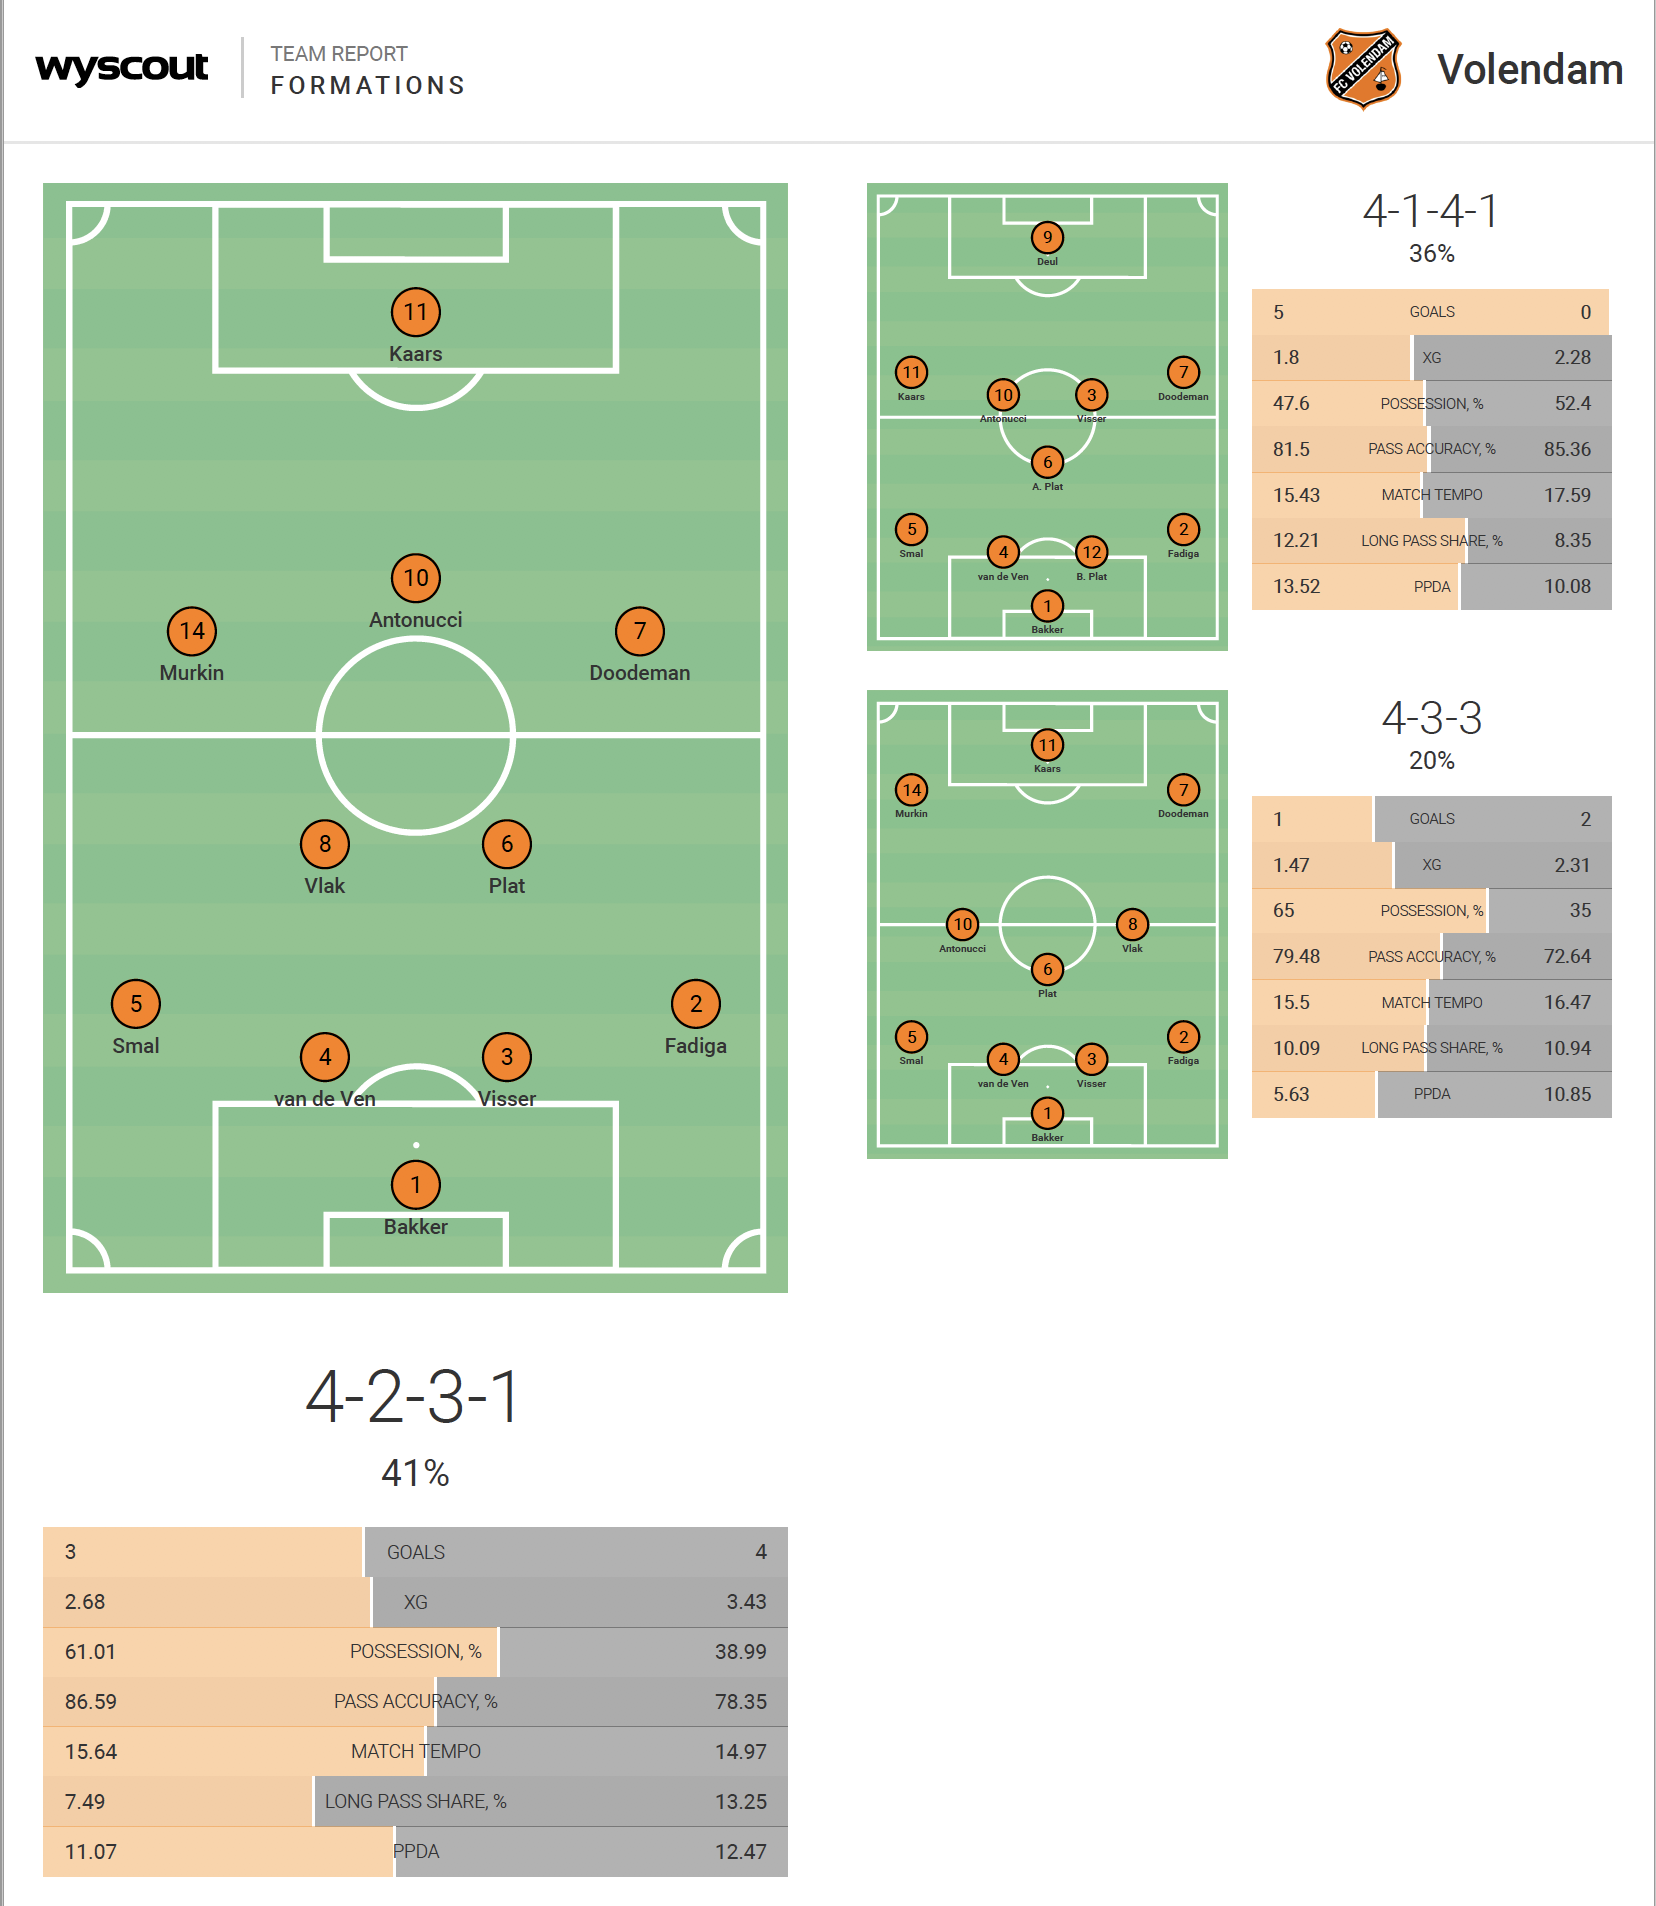 Wim Jonk at Volendam 2019/20 - tactical analysis + tactics